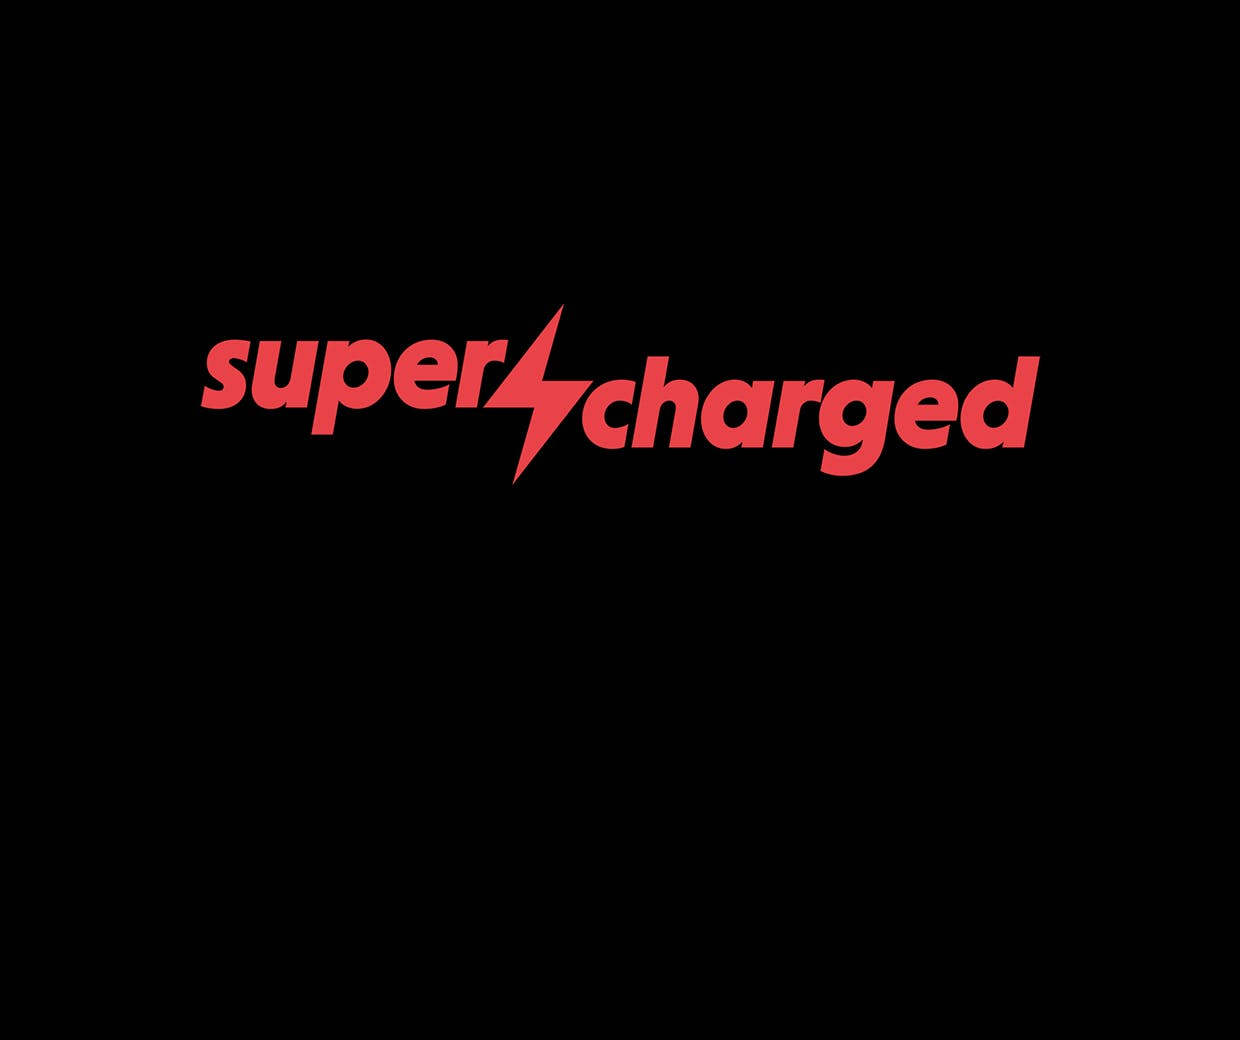 Supercharged